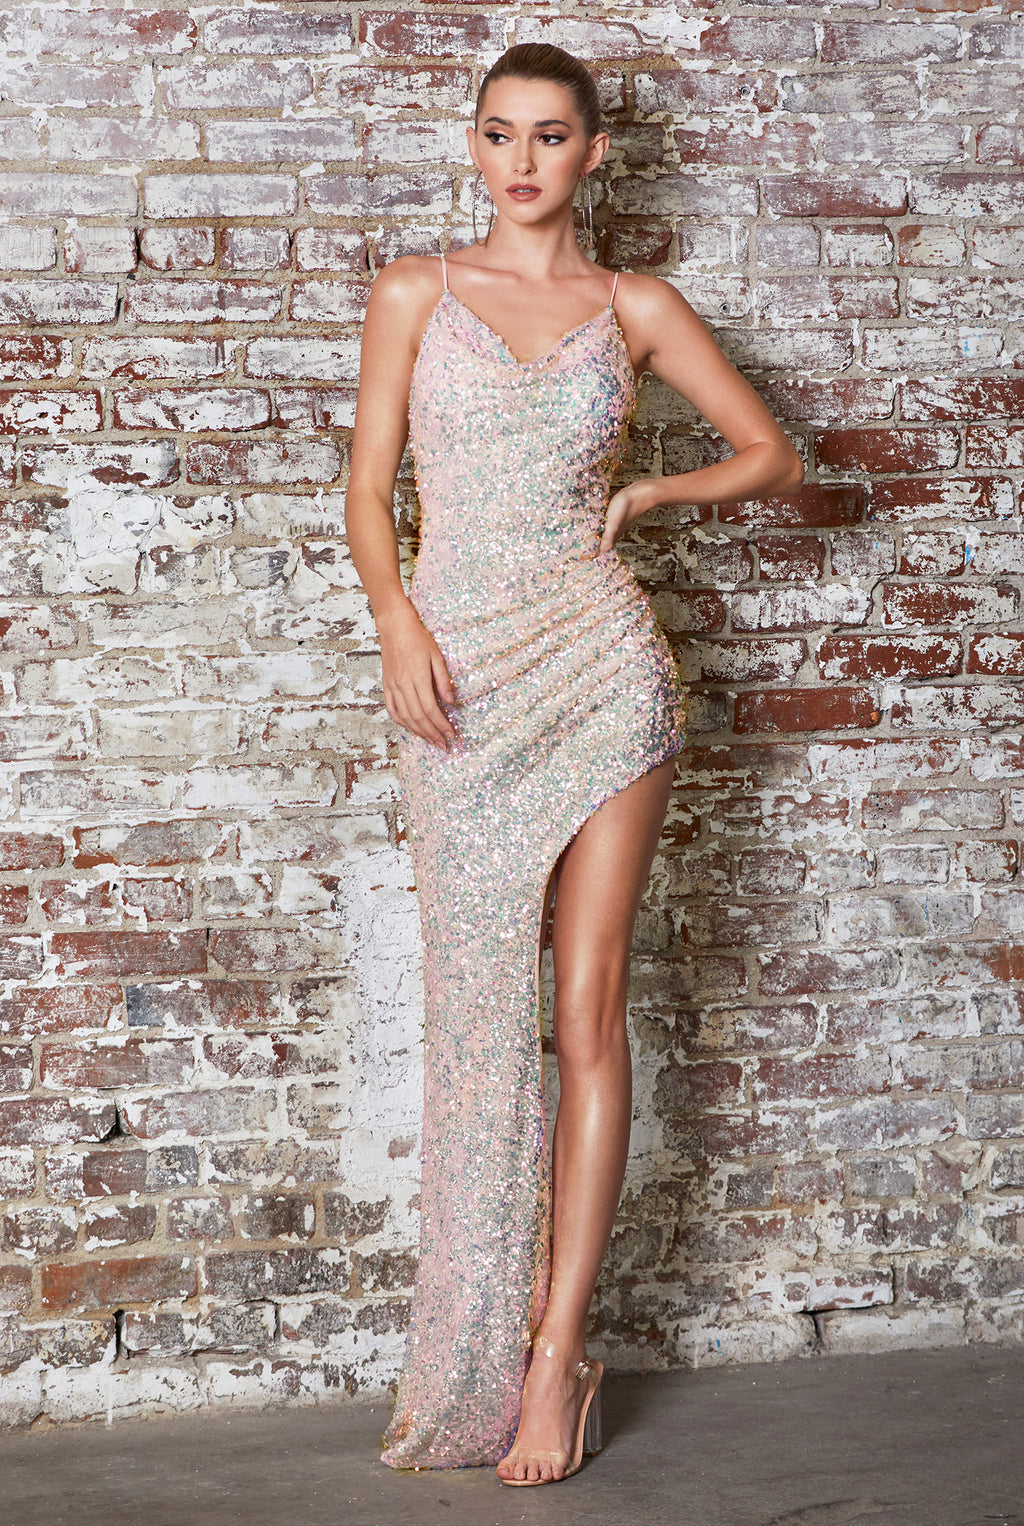 Shimmering Opal Blush Long Dress With Leg Slit Style #LACD181 | Prom 2020